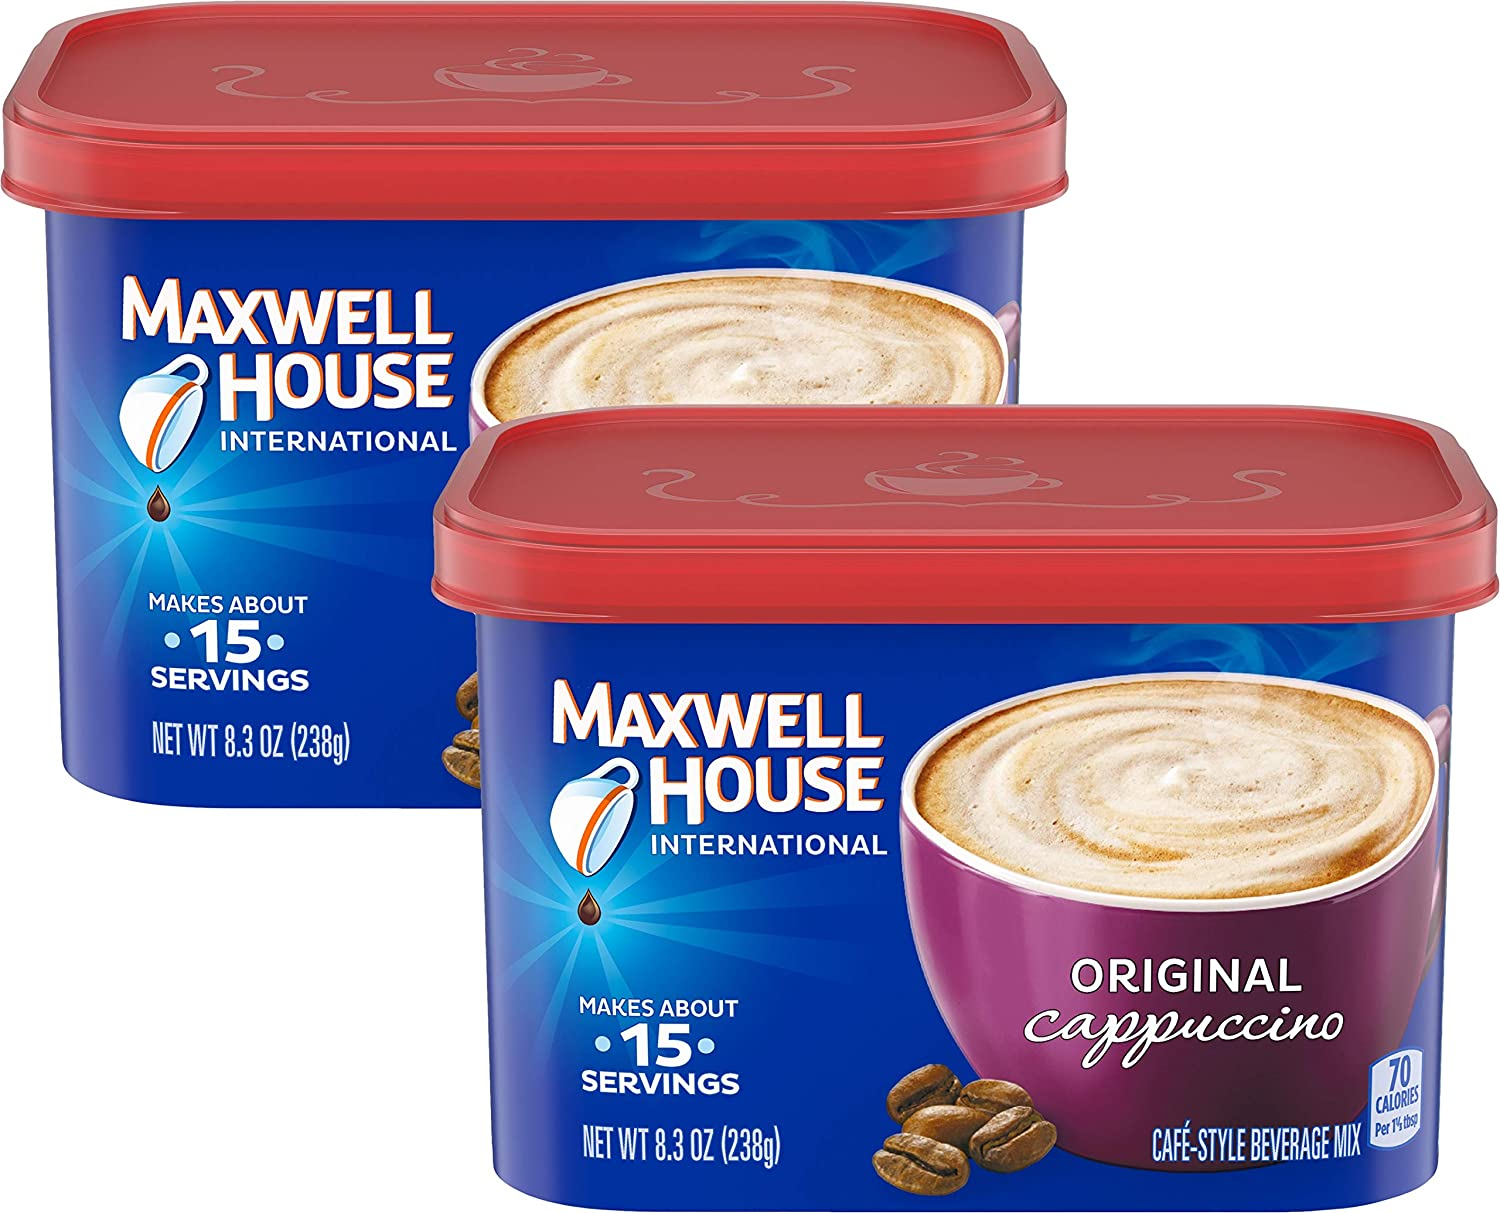 Maxwell House International Cafe Original Cappuccino, 8.5 oz Tub (Pack of 2)